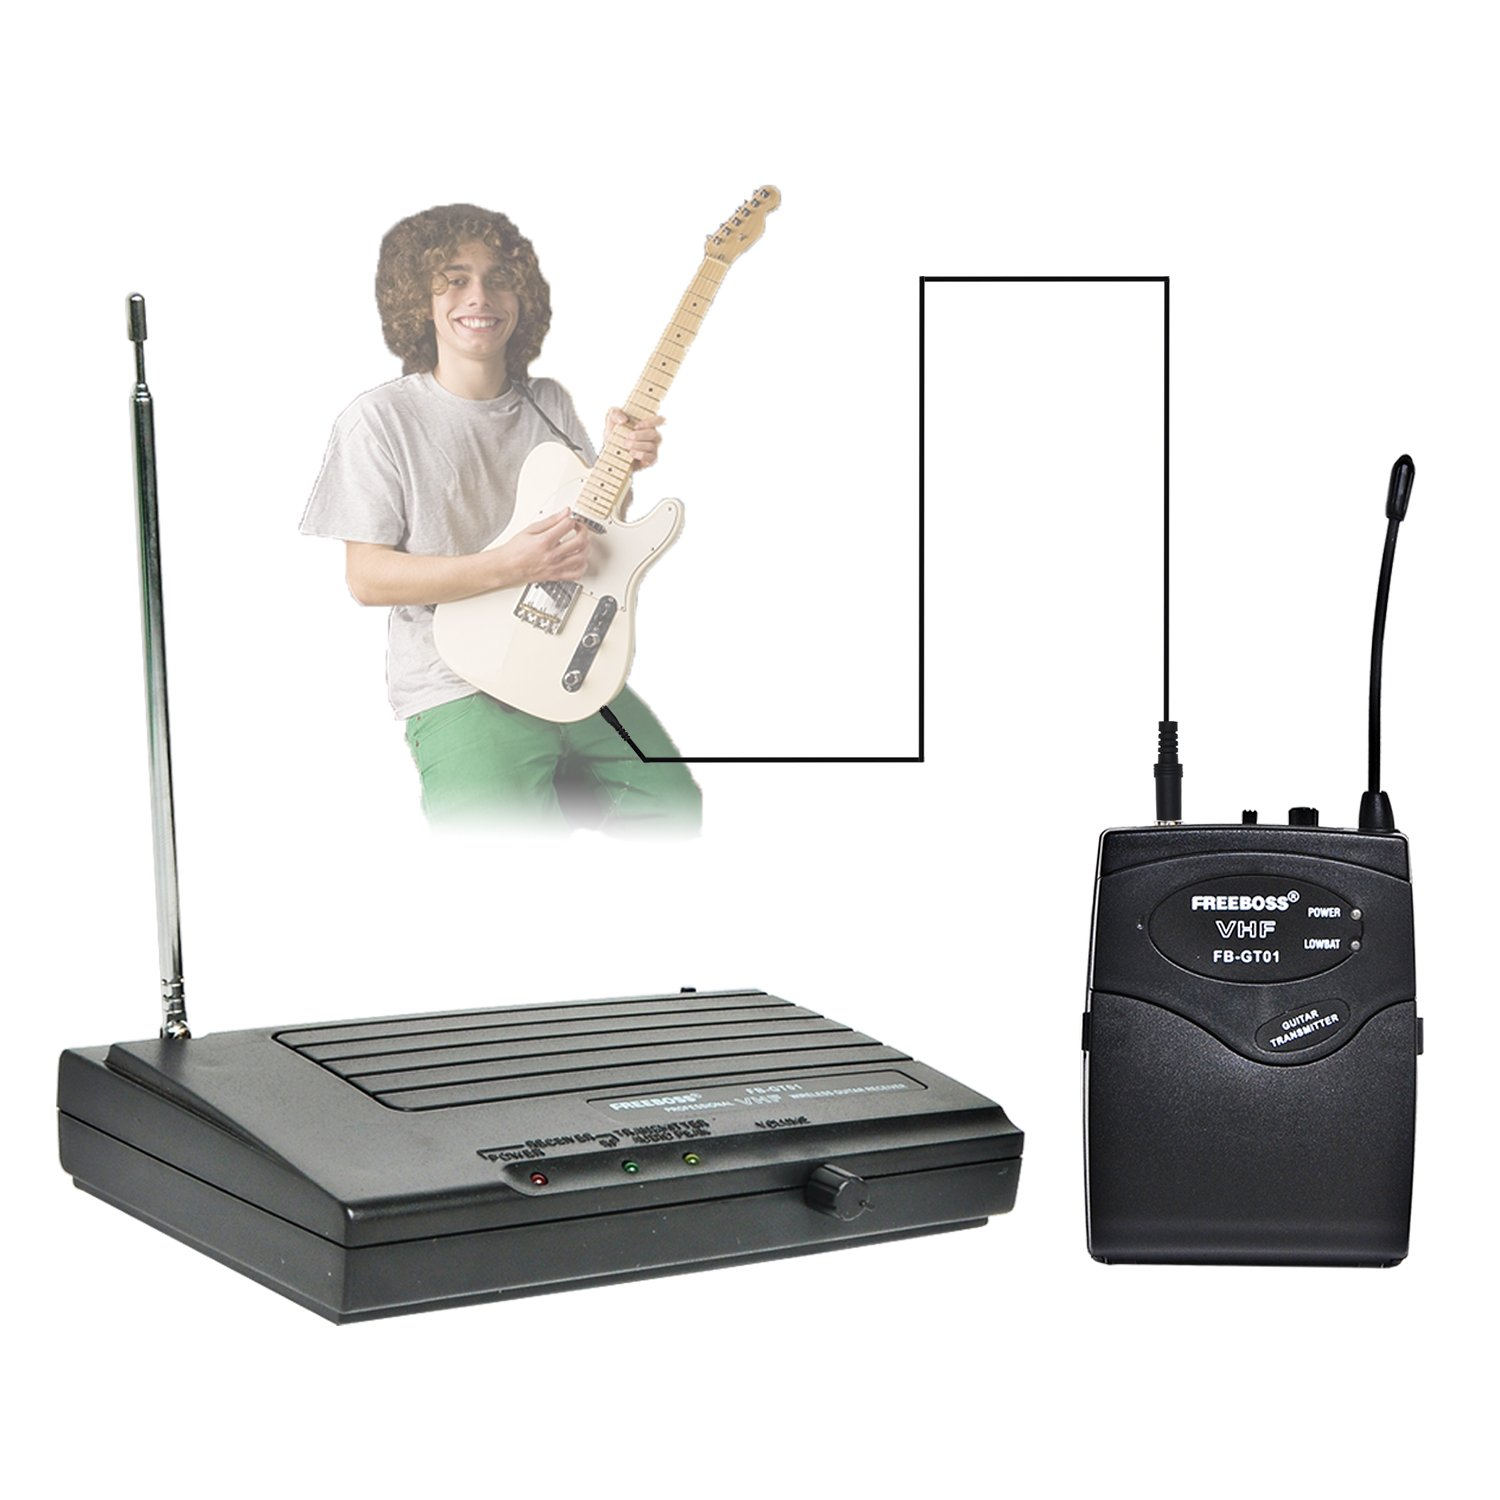 FREEBOSS FB-GT01 Guitar Wireless Microphone (Only for Guitar) QIYANG